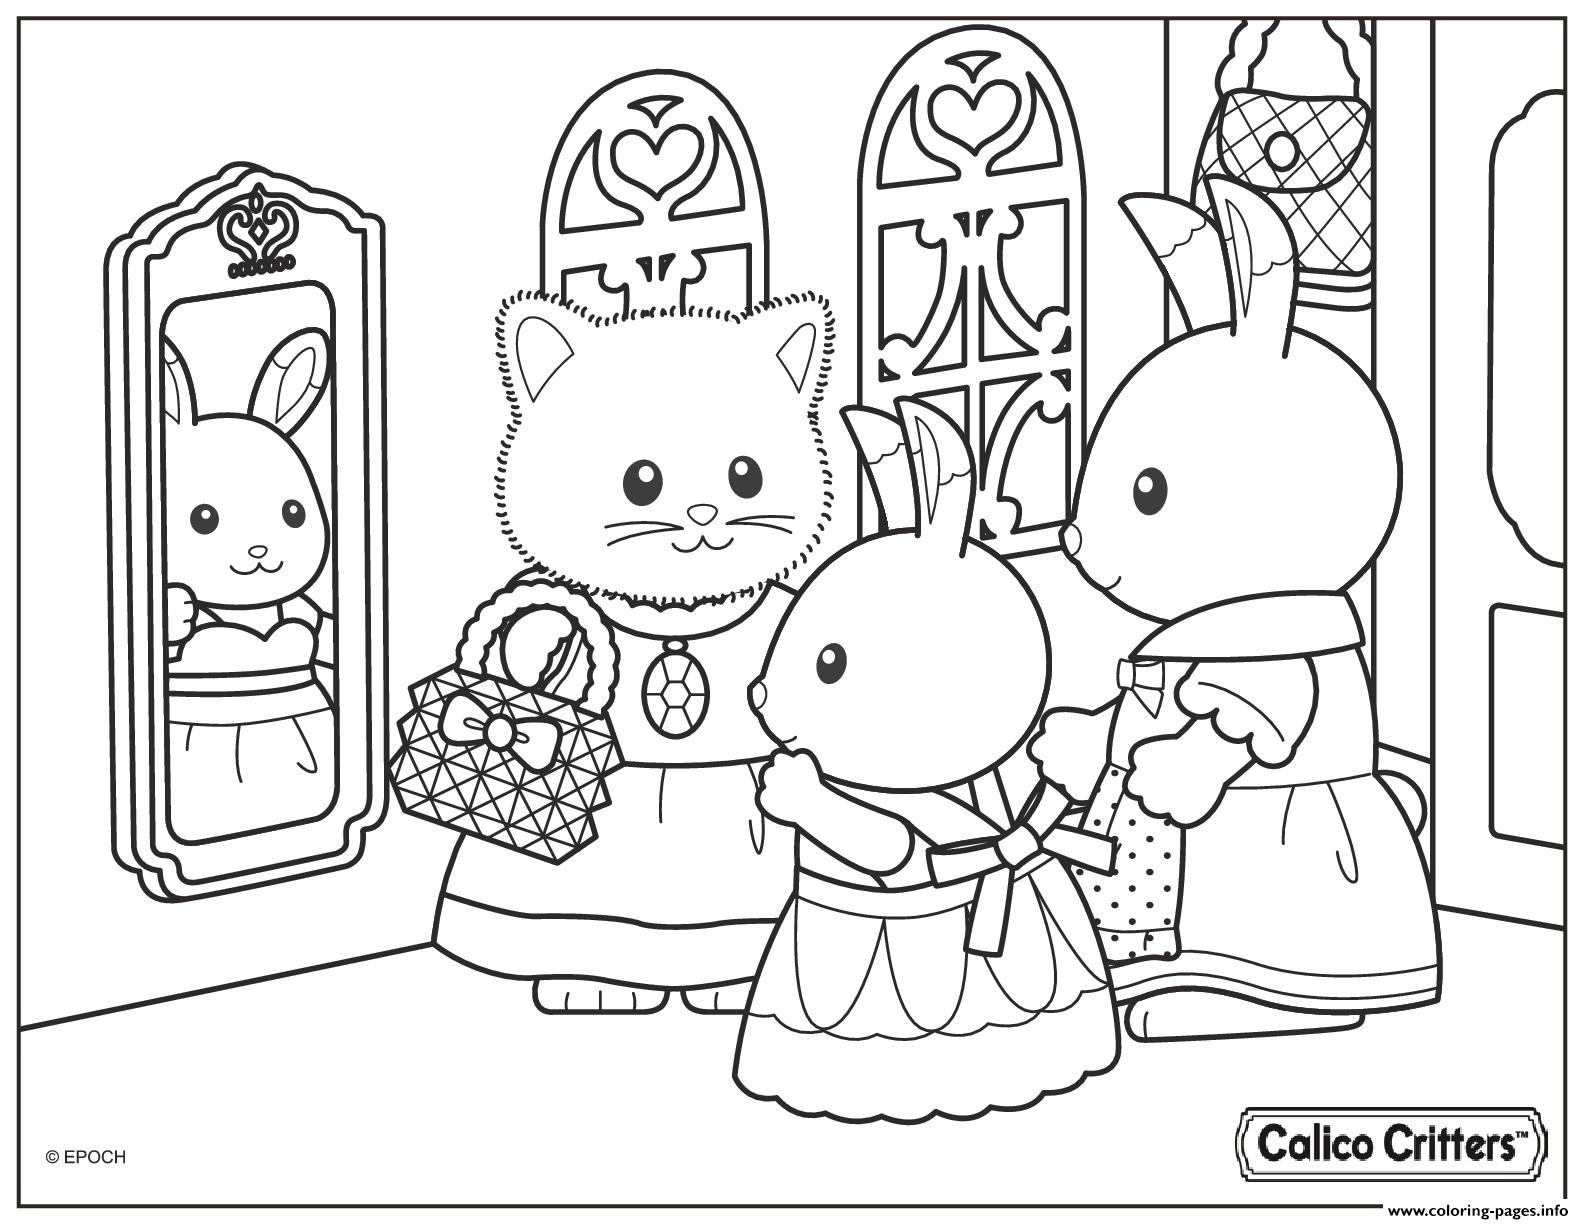 Calico Critters Getting Ready For The Church Coloring Pages Printable